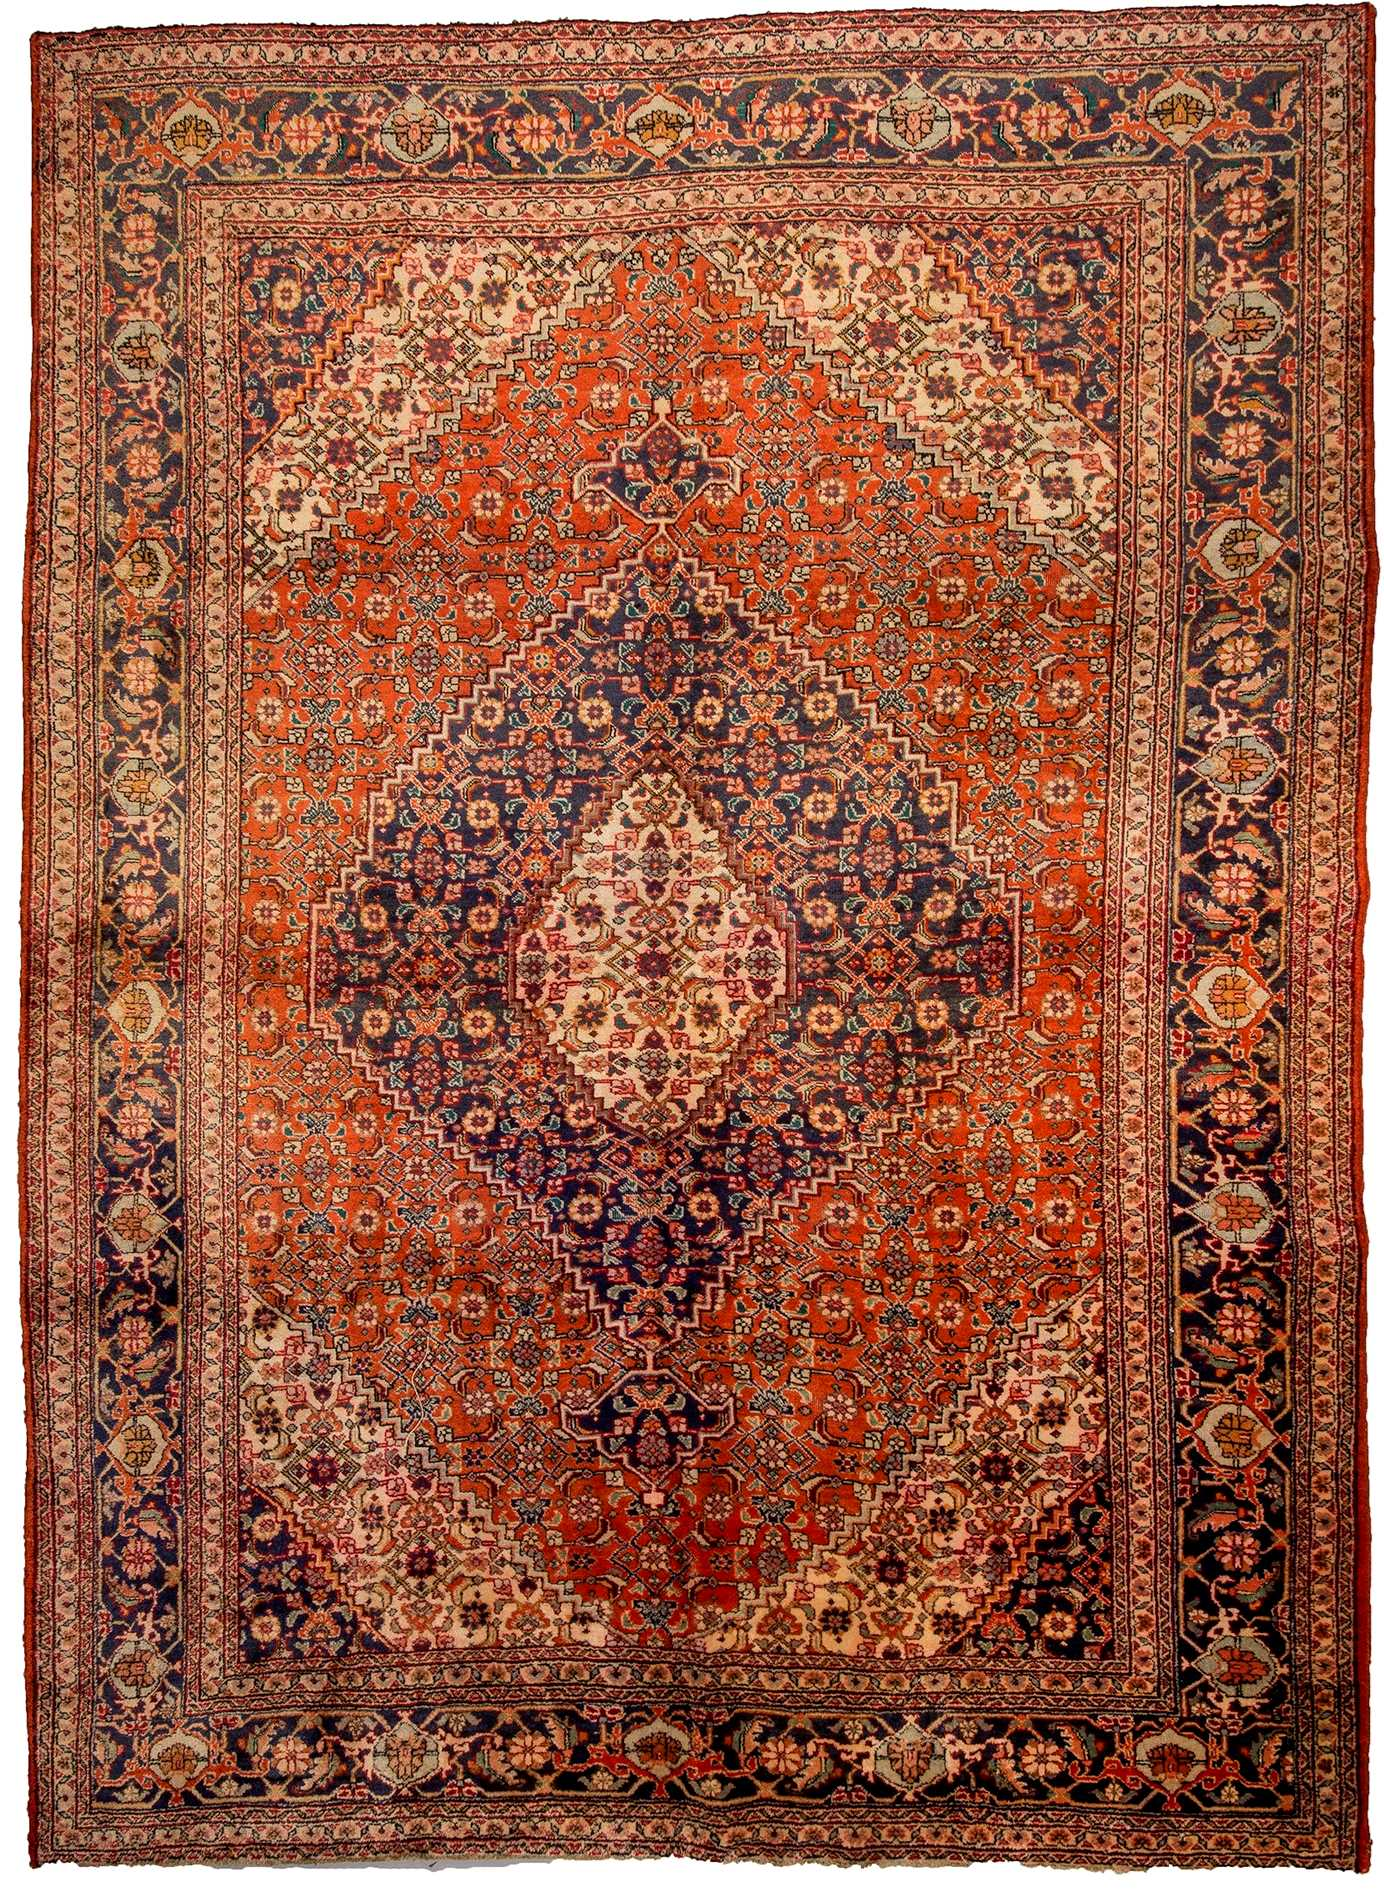 Decorative Persian Rug Rugs Home Decor